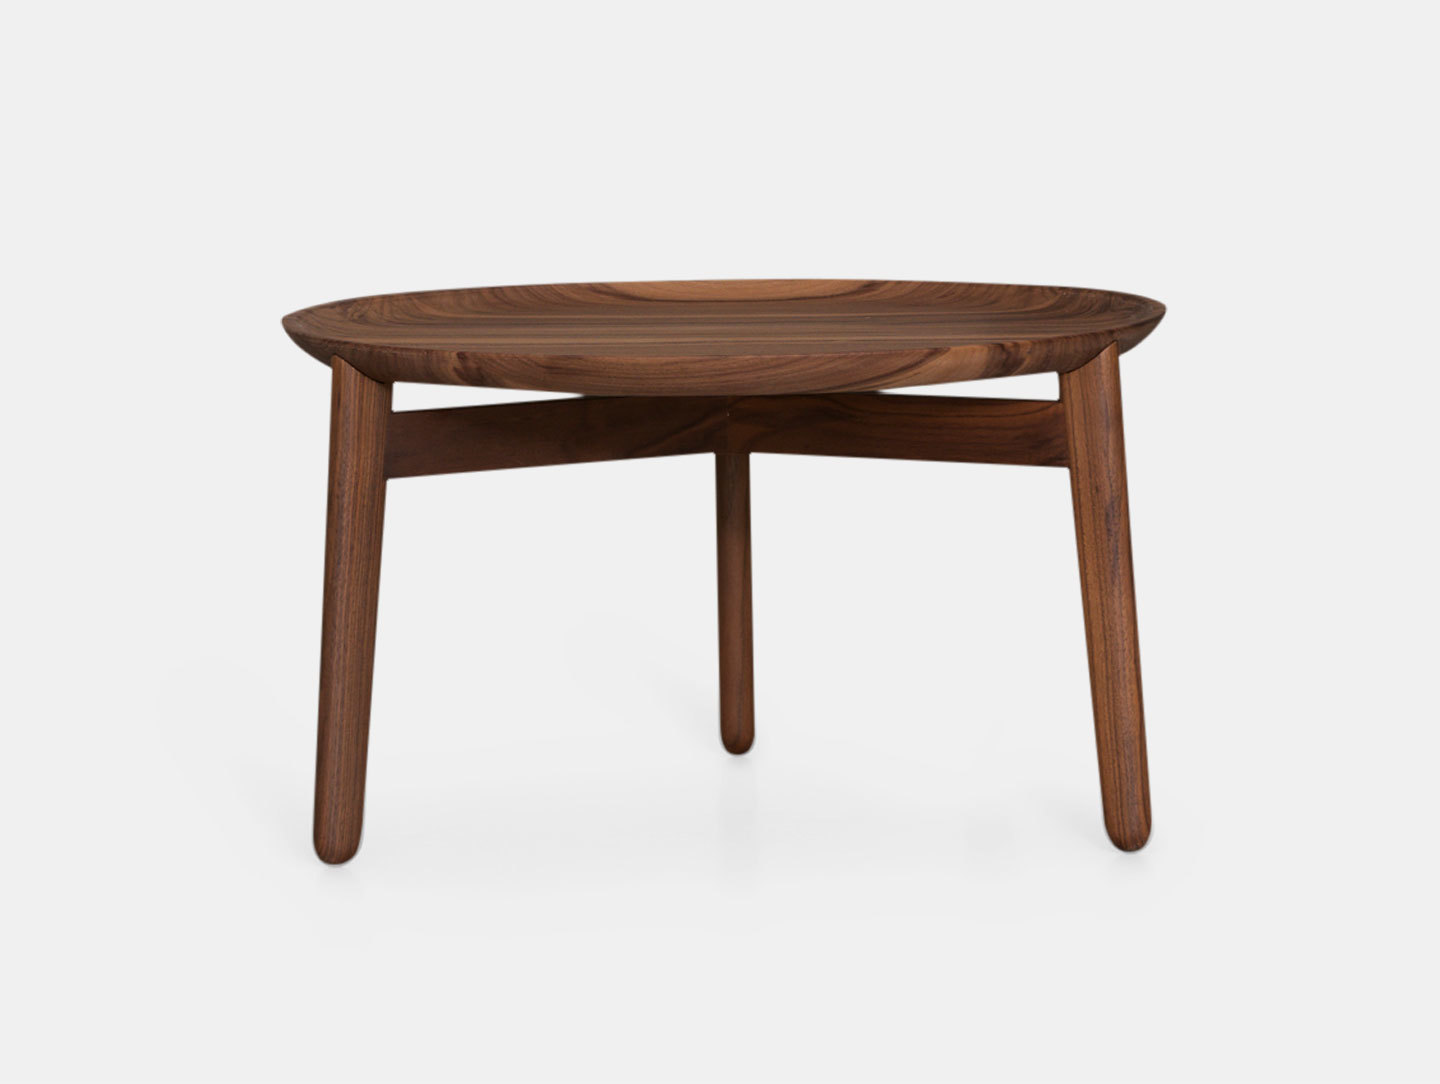 Zeitraum Plaisir Table Walnut Dia54 H32 Formstelle